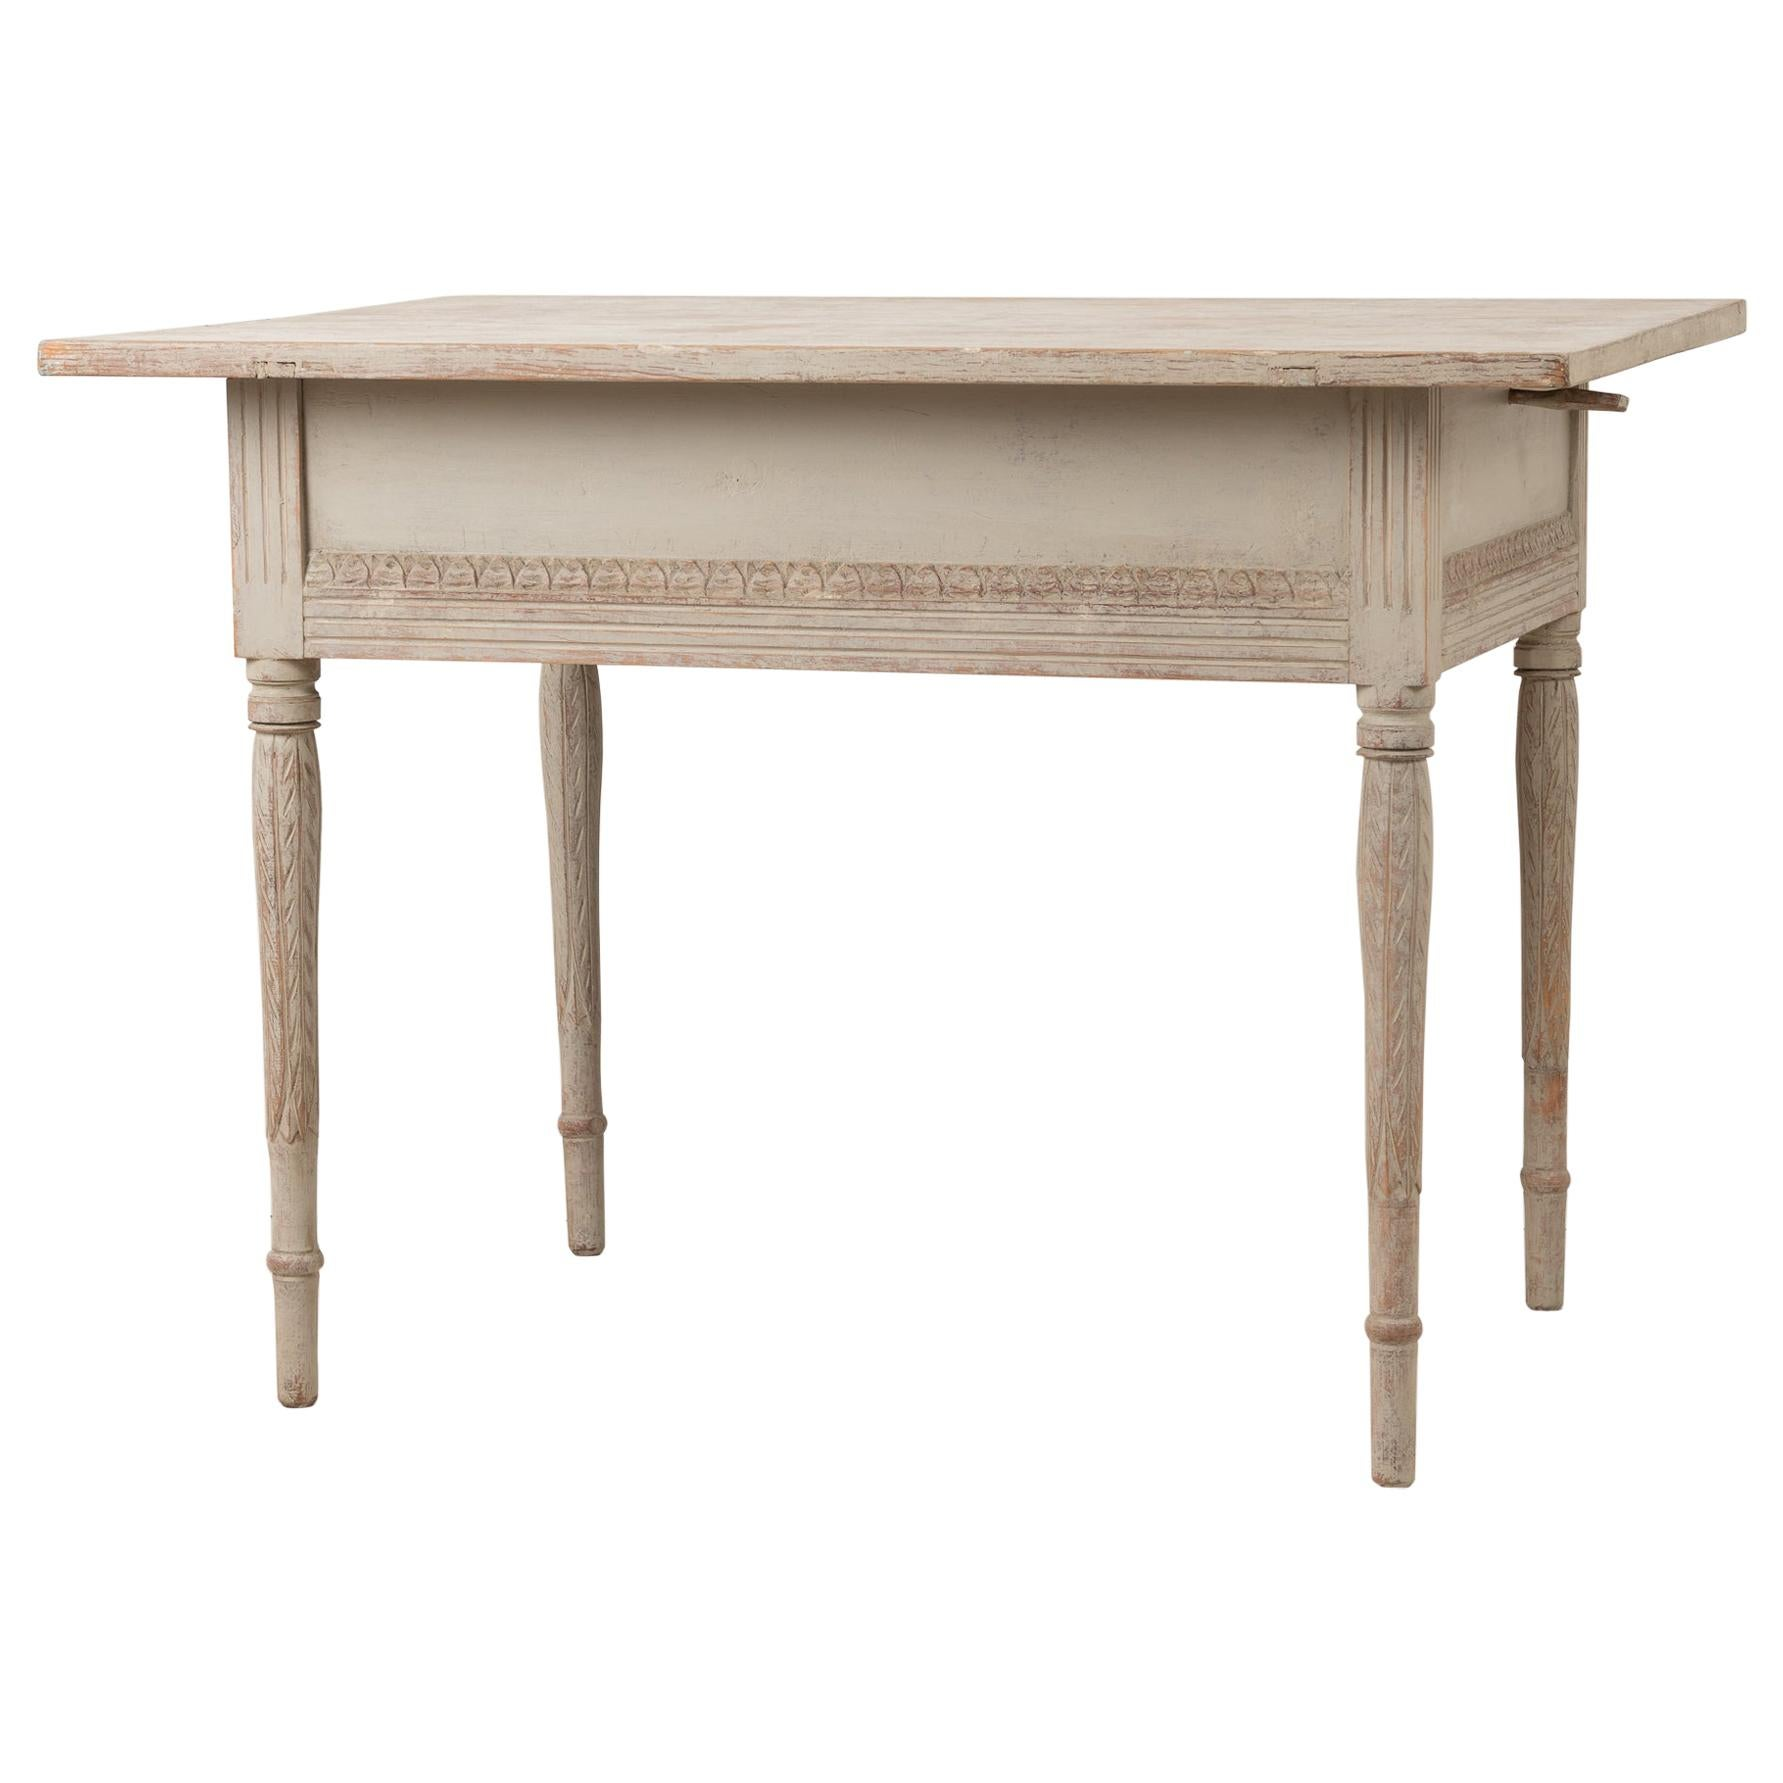 18th Century Swedish Neoclassical Console Table